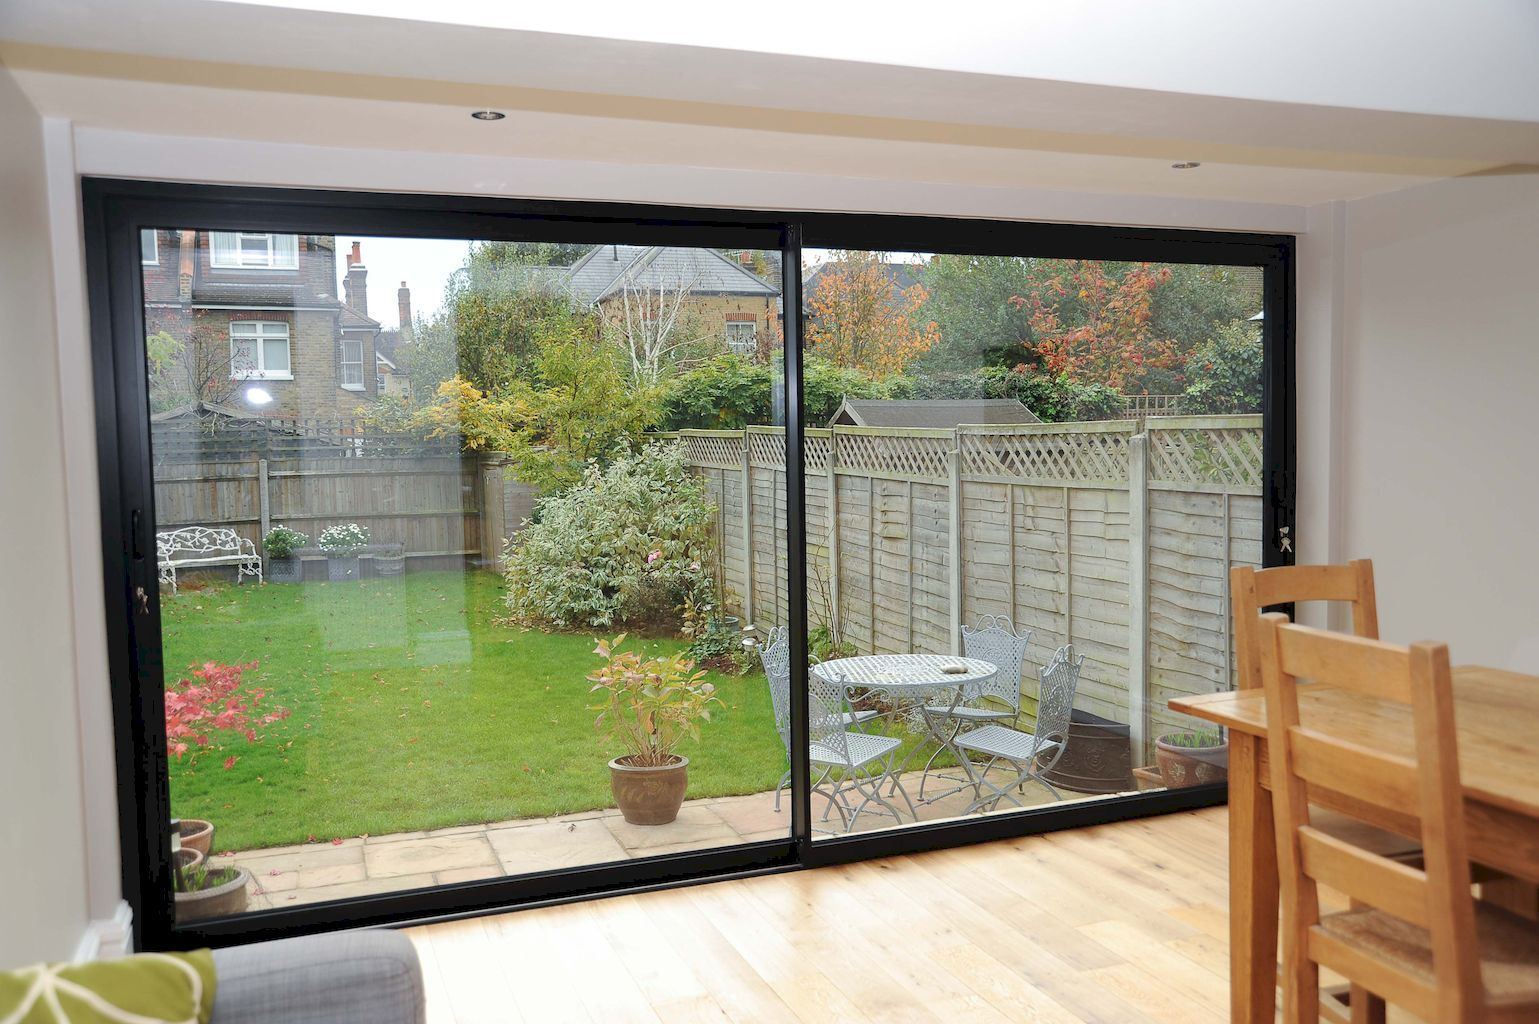 Sliding Doors Idea for Patio Areas00019 (With images